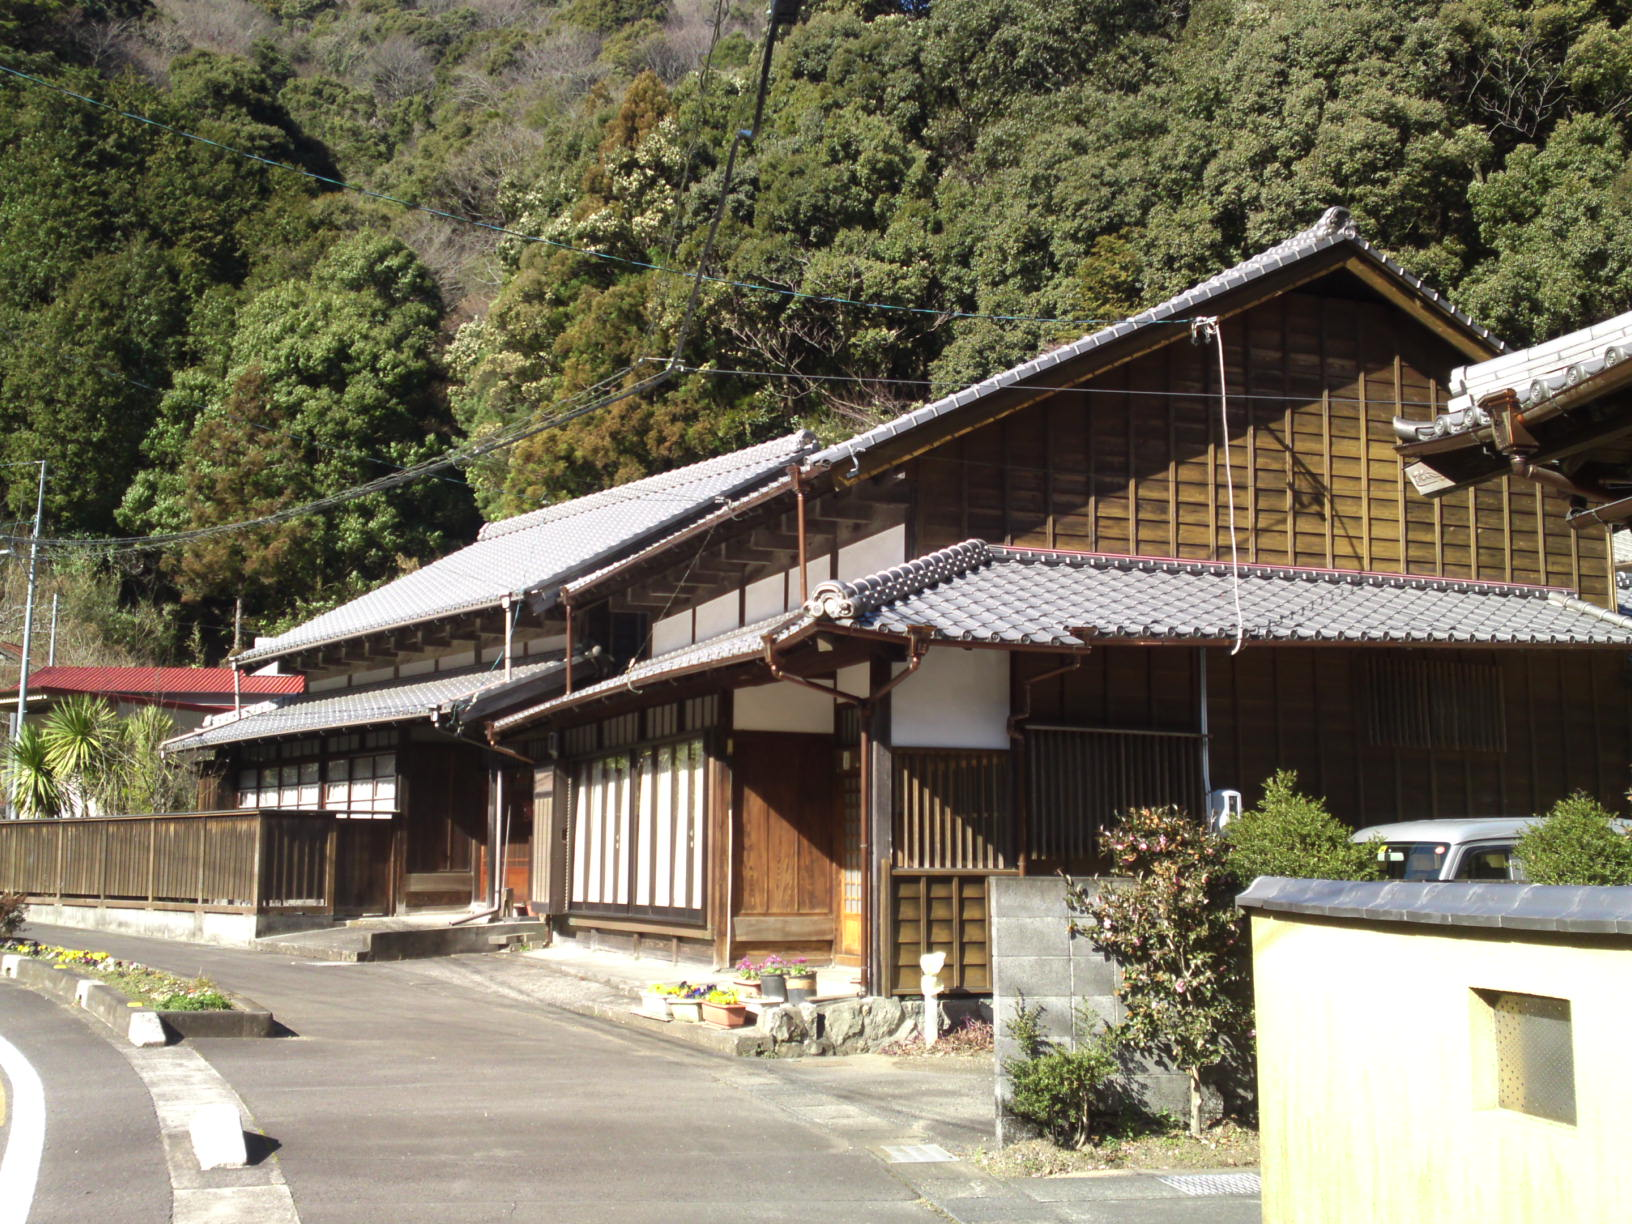 Traditional japanese houses and inns in utsunoya shizuoka city shizuoka pictures - Traditional japanese house ...